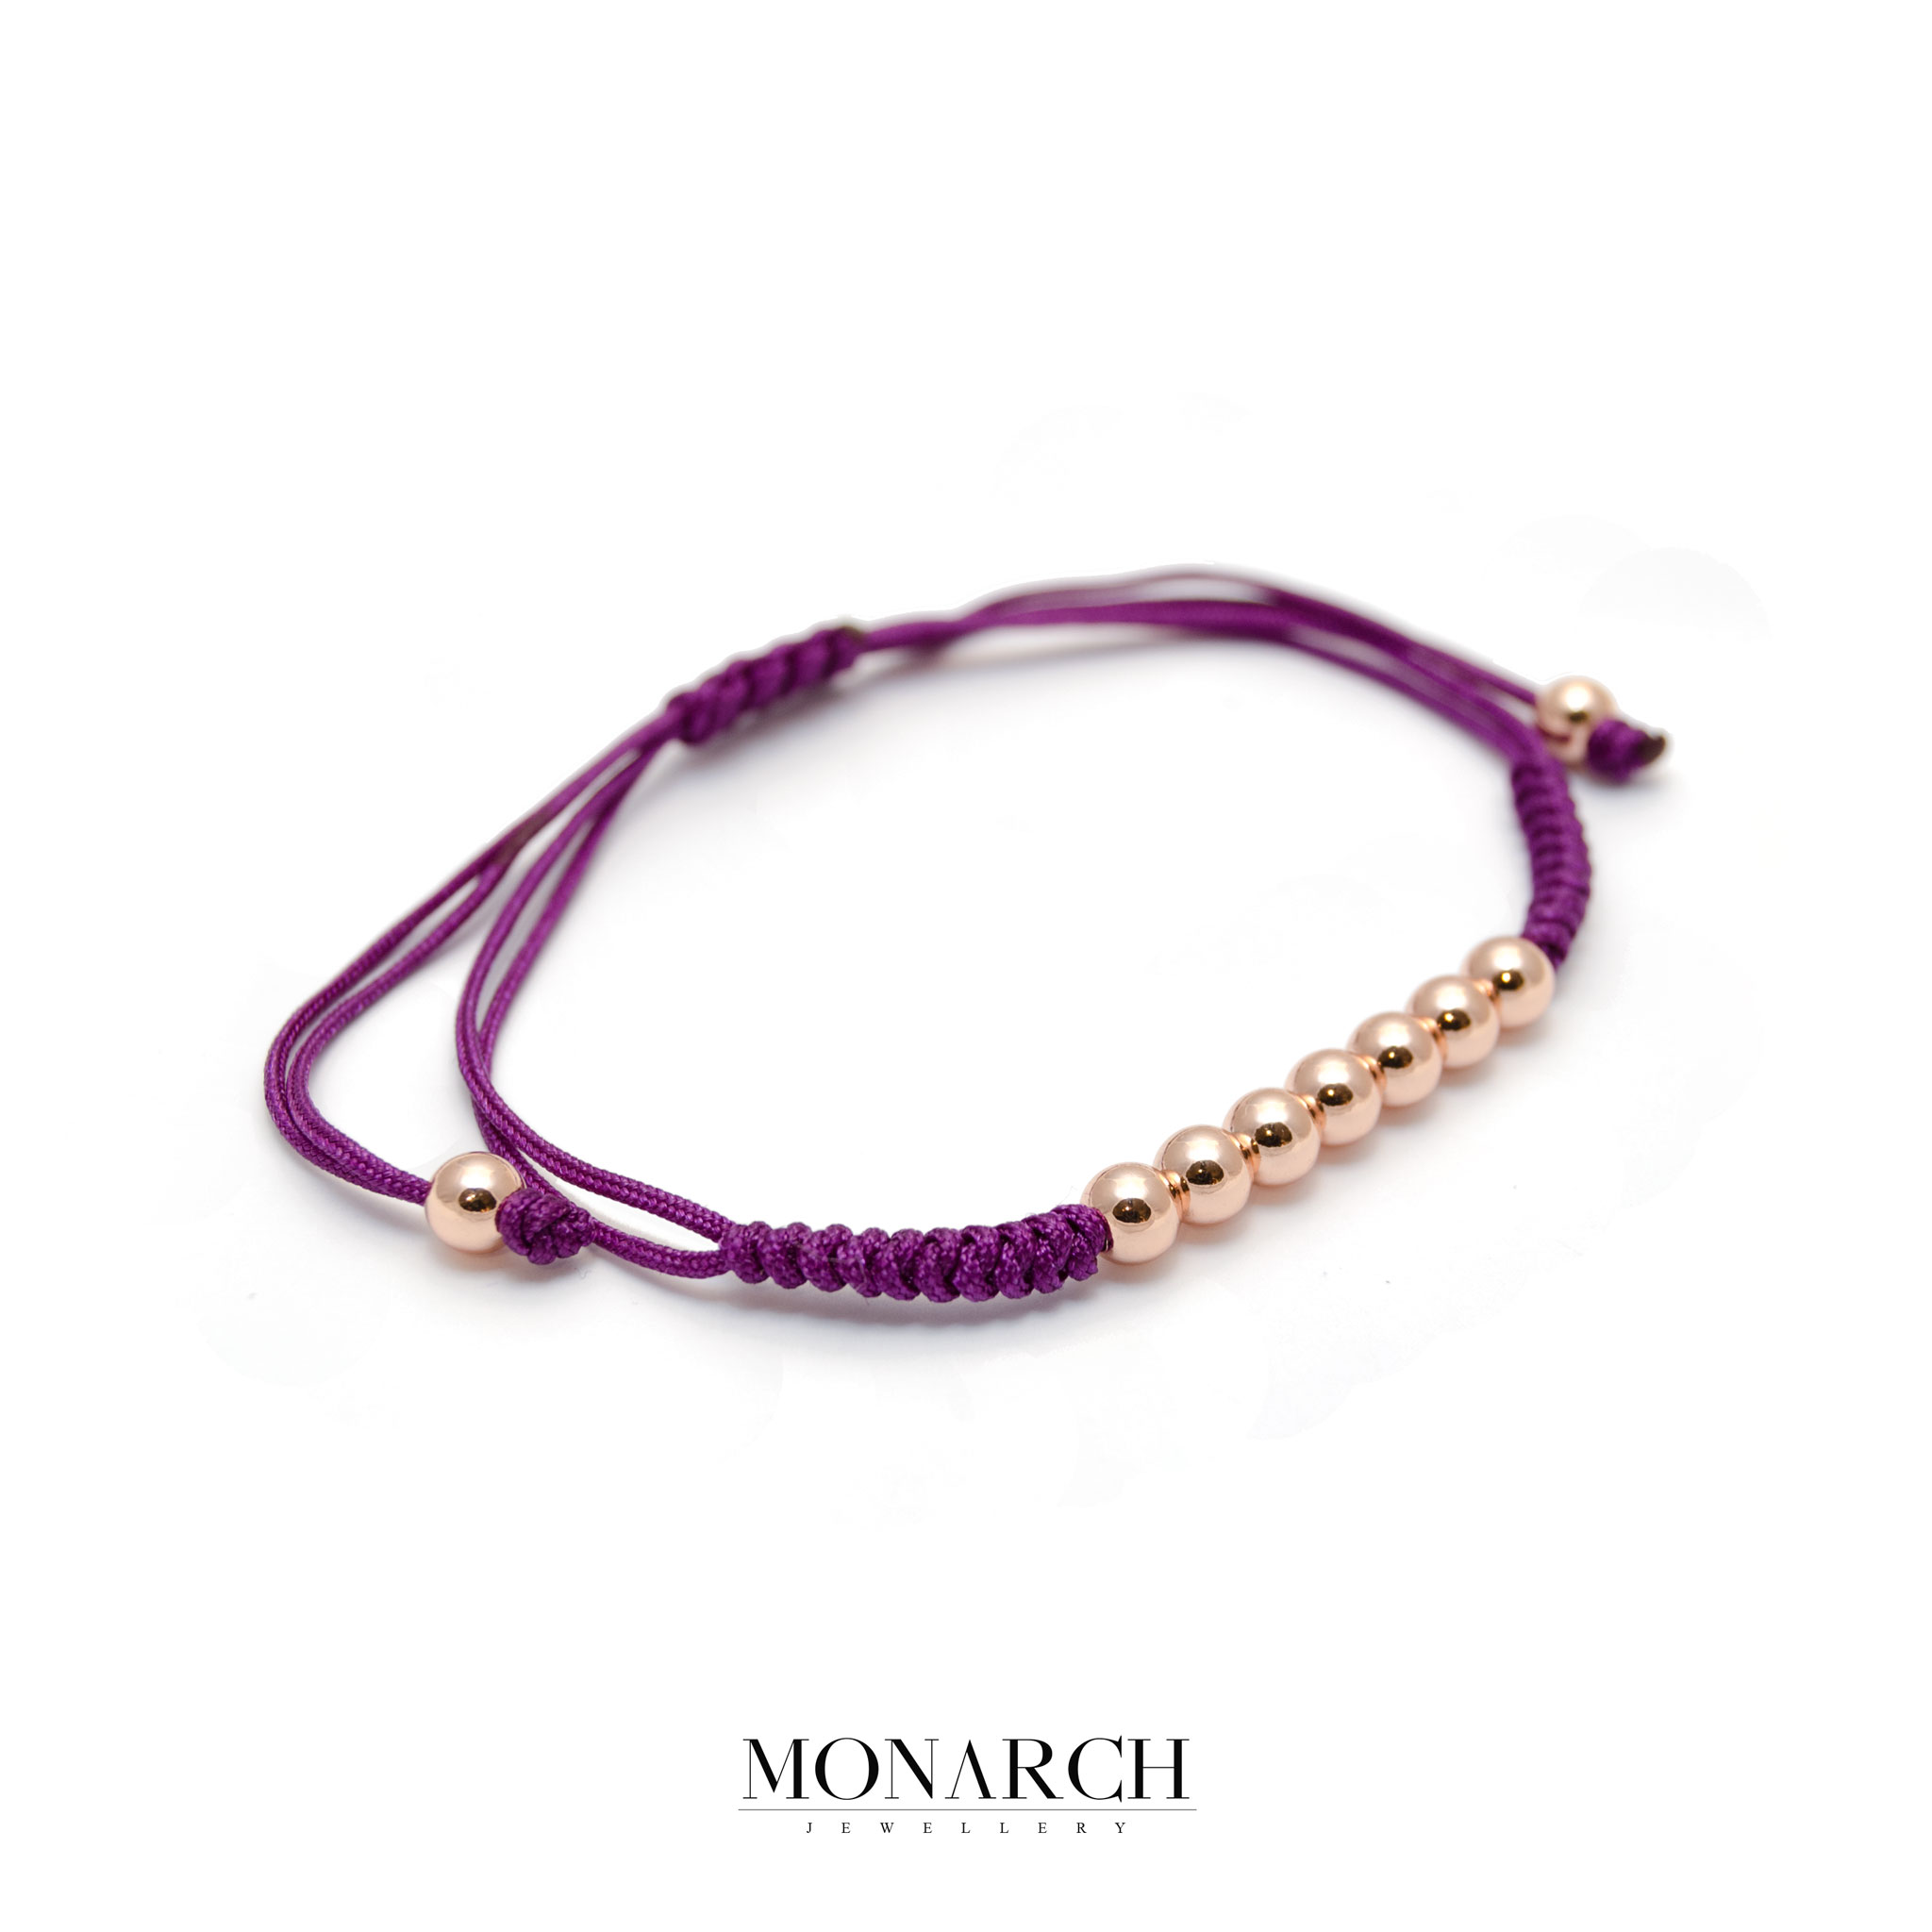 Monarch Jewellery Gold Rose Bead Magenta Macrame Bracelet